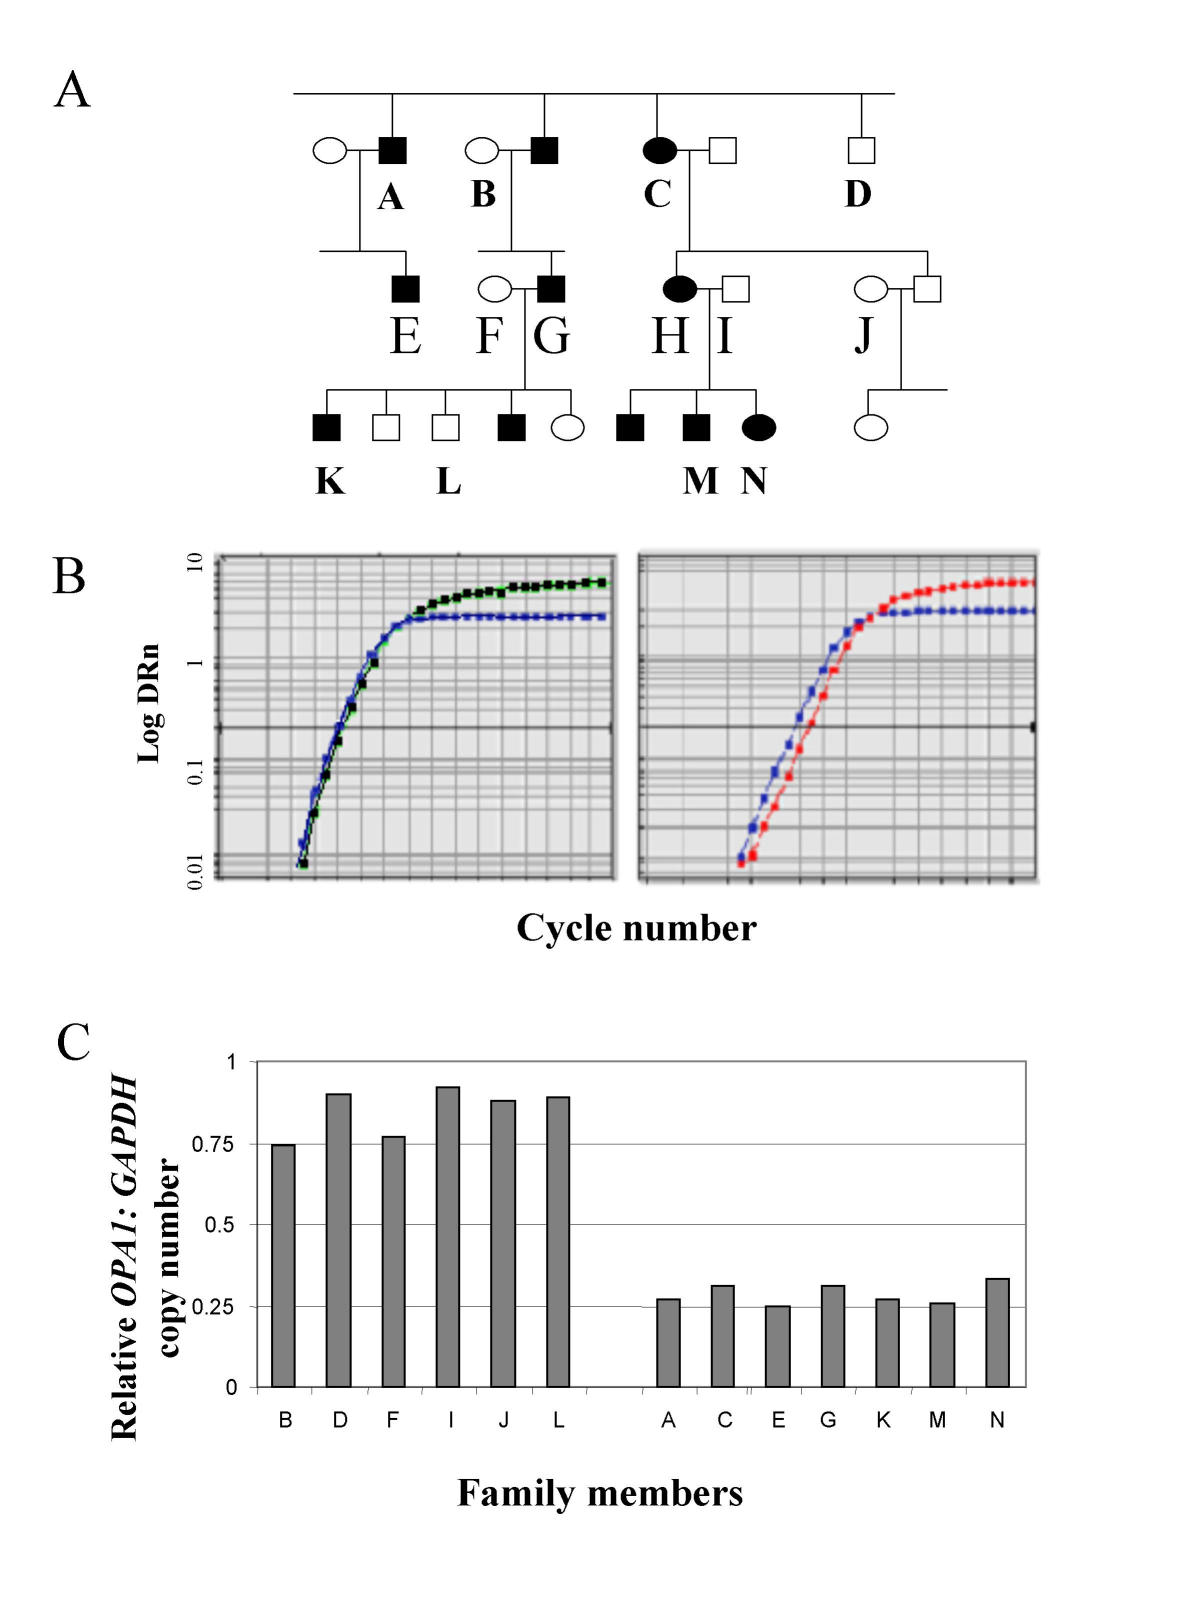 http://static-content.springer.com/image/art%3A10.1186%2F1472-6750-3-18/MediaObjects/12896_2003_Article_52_Fig6_HTML.jpg